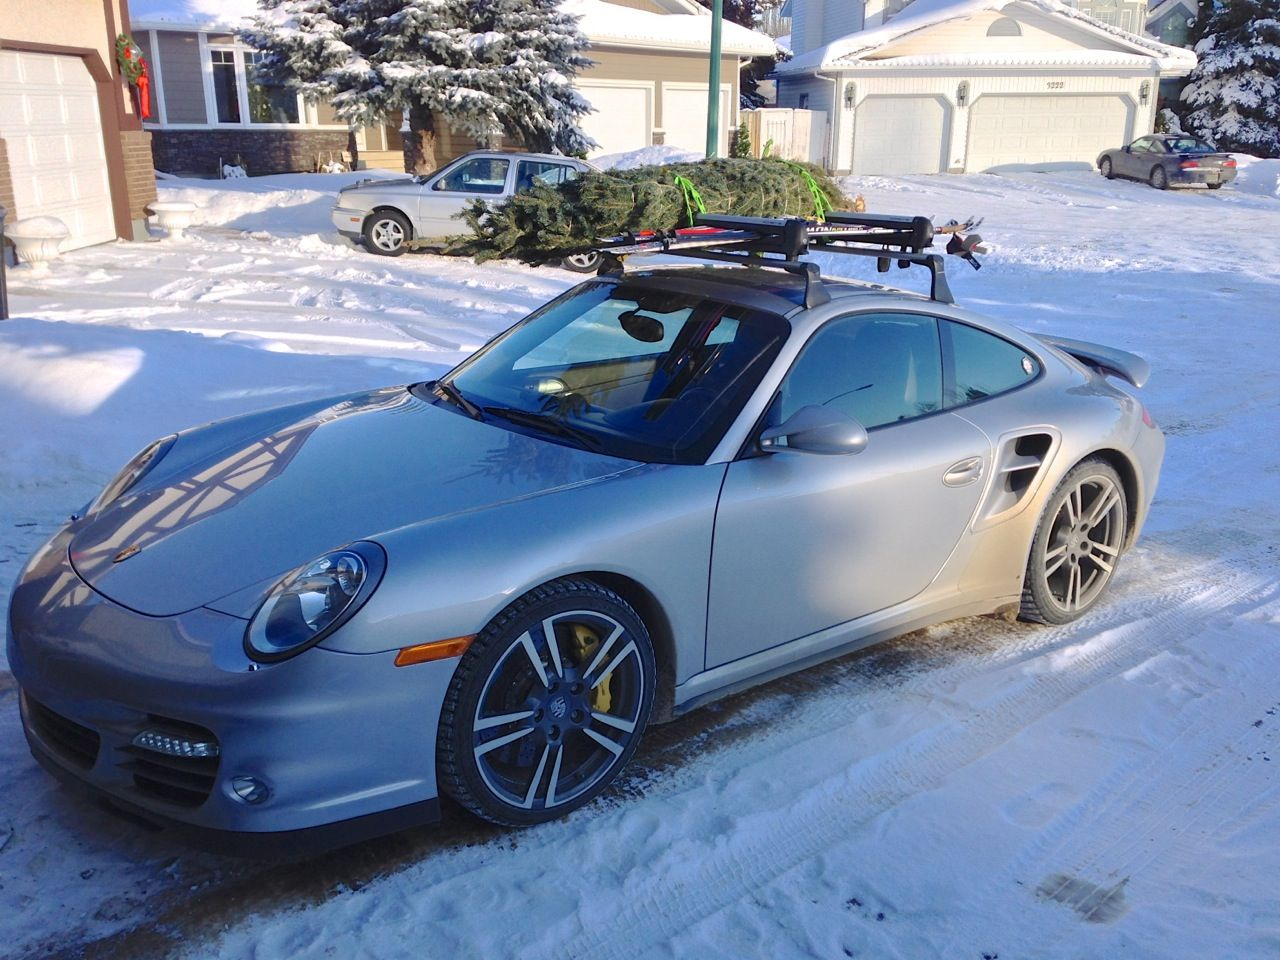 Roof Rack Carrying Cross Country Skis And Christmas Tree Weihnachten